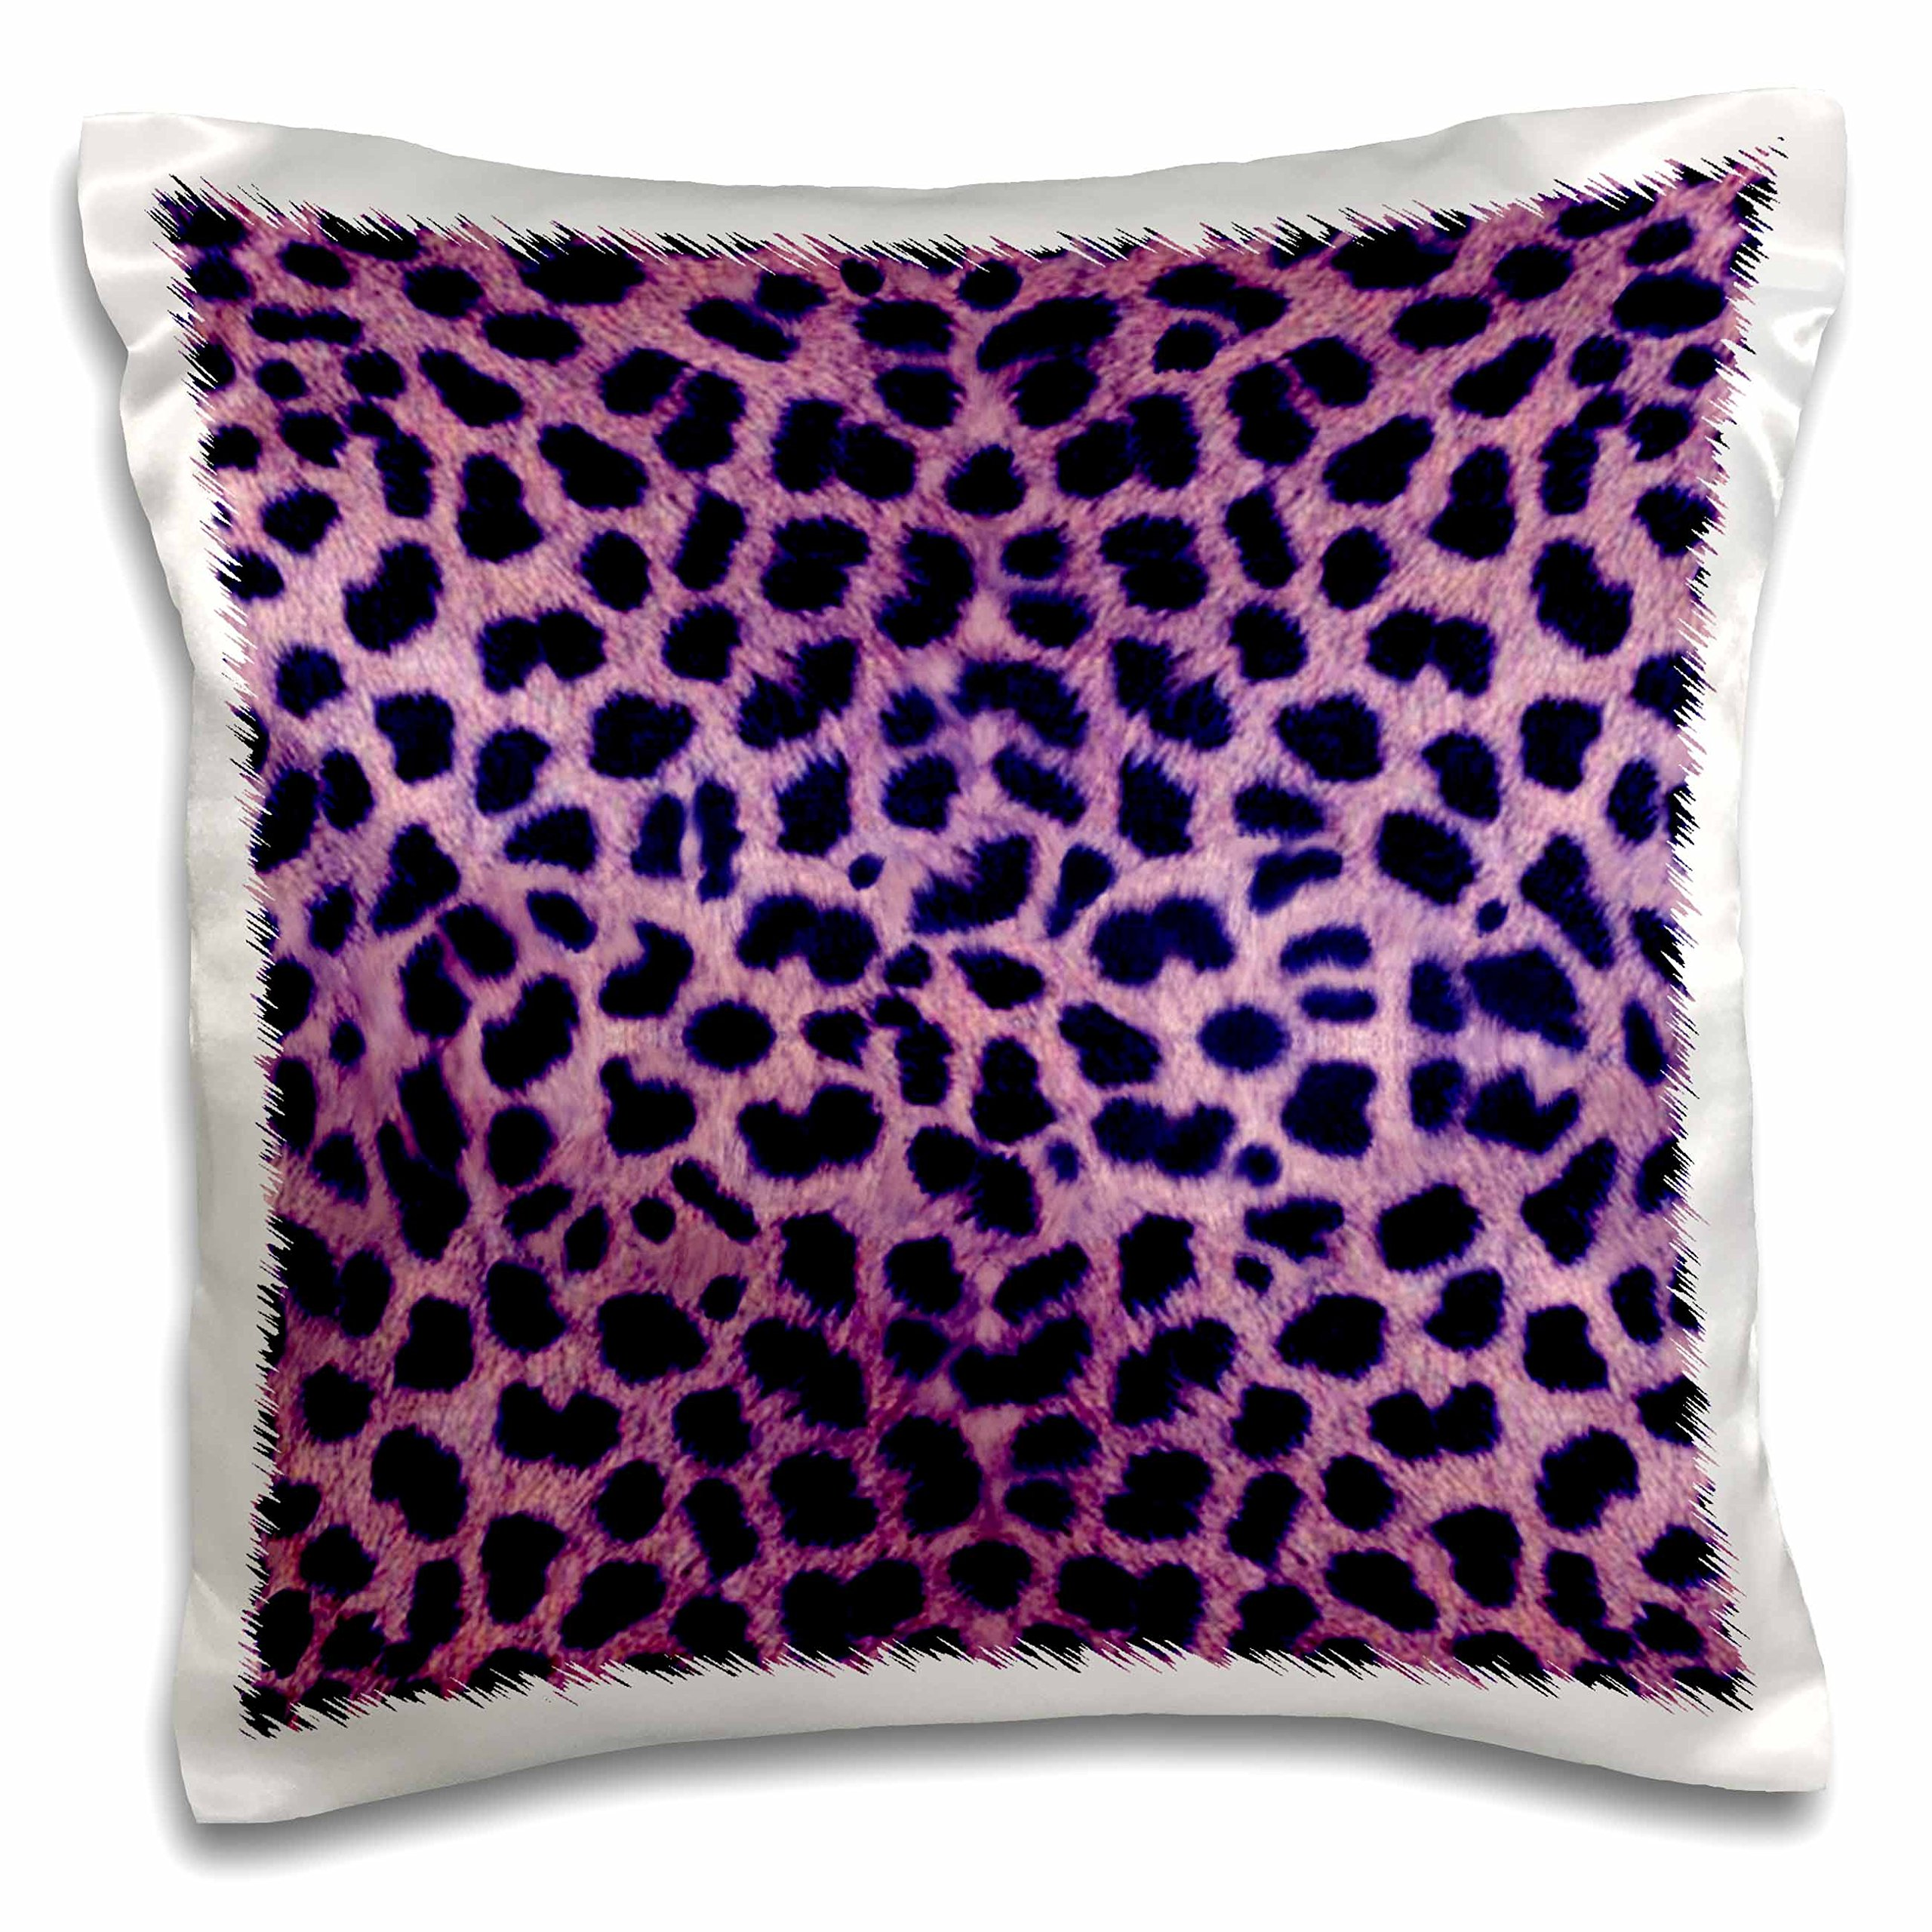 3dRose Purple Cheetah Animal Print Pillow Case, 16 x 16''